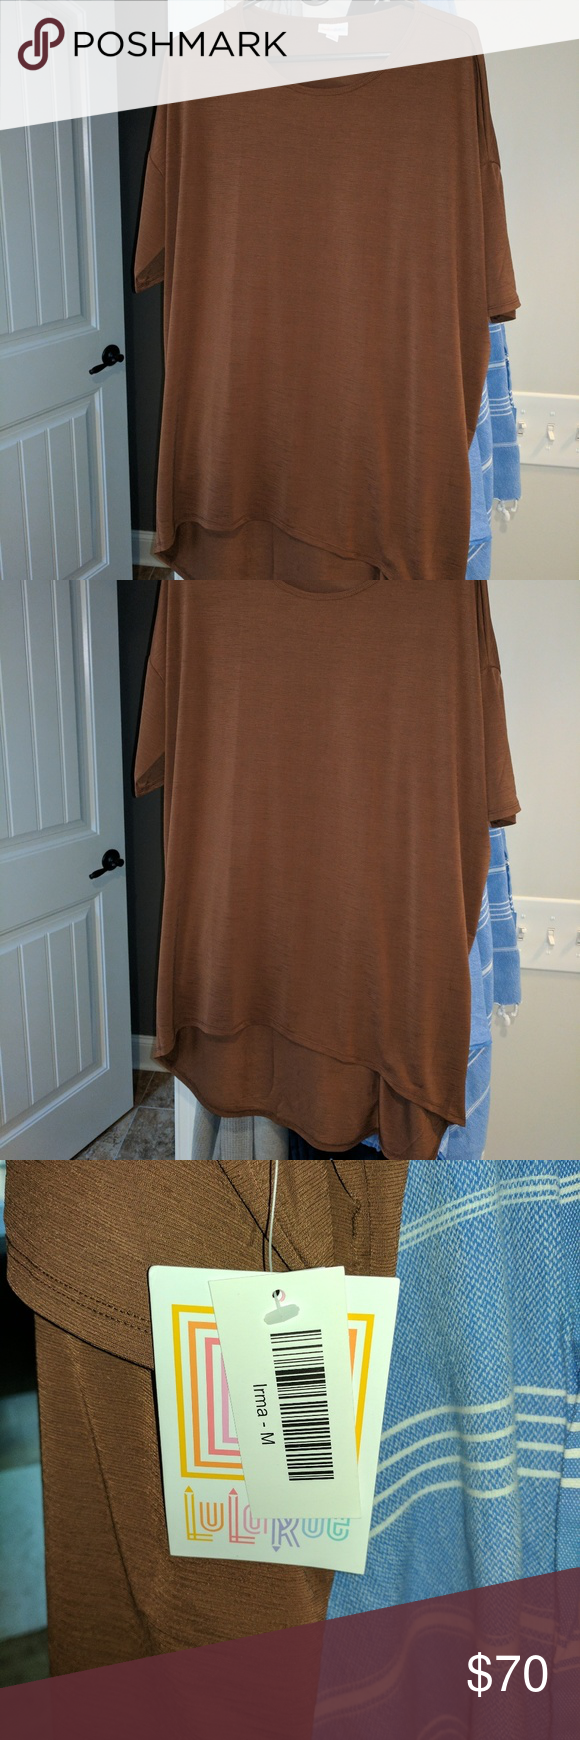 NWT Lularoe Irma Chocolate Brown Medium I have a very hard to find chocolate brown Irma. Turns out I have two of the same shirt. Crazy right? Well, it happens when you buy a lot quickly and forget. Both were bought second hand, not from a consultant. I just want to make my money back. Brand new. Never worn. Tags attached. This Irma is the more cool dressy fabric as opposed to the thicker cotton. It is very nice. I just don't need a duplicate. Make me an offer. LuLaRoe Tops Tunics